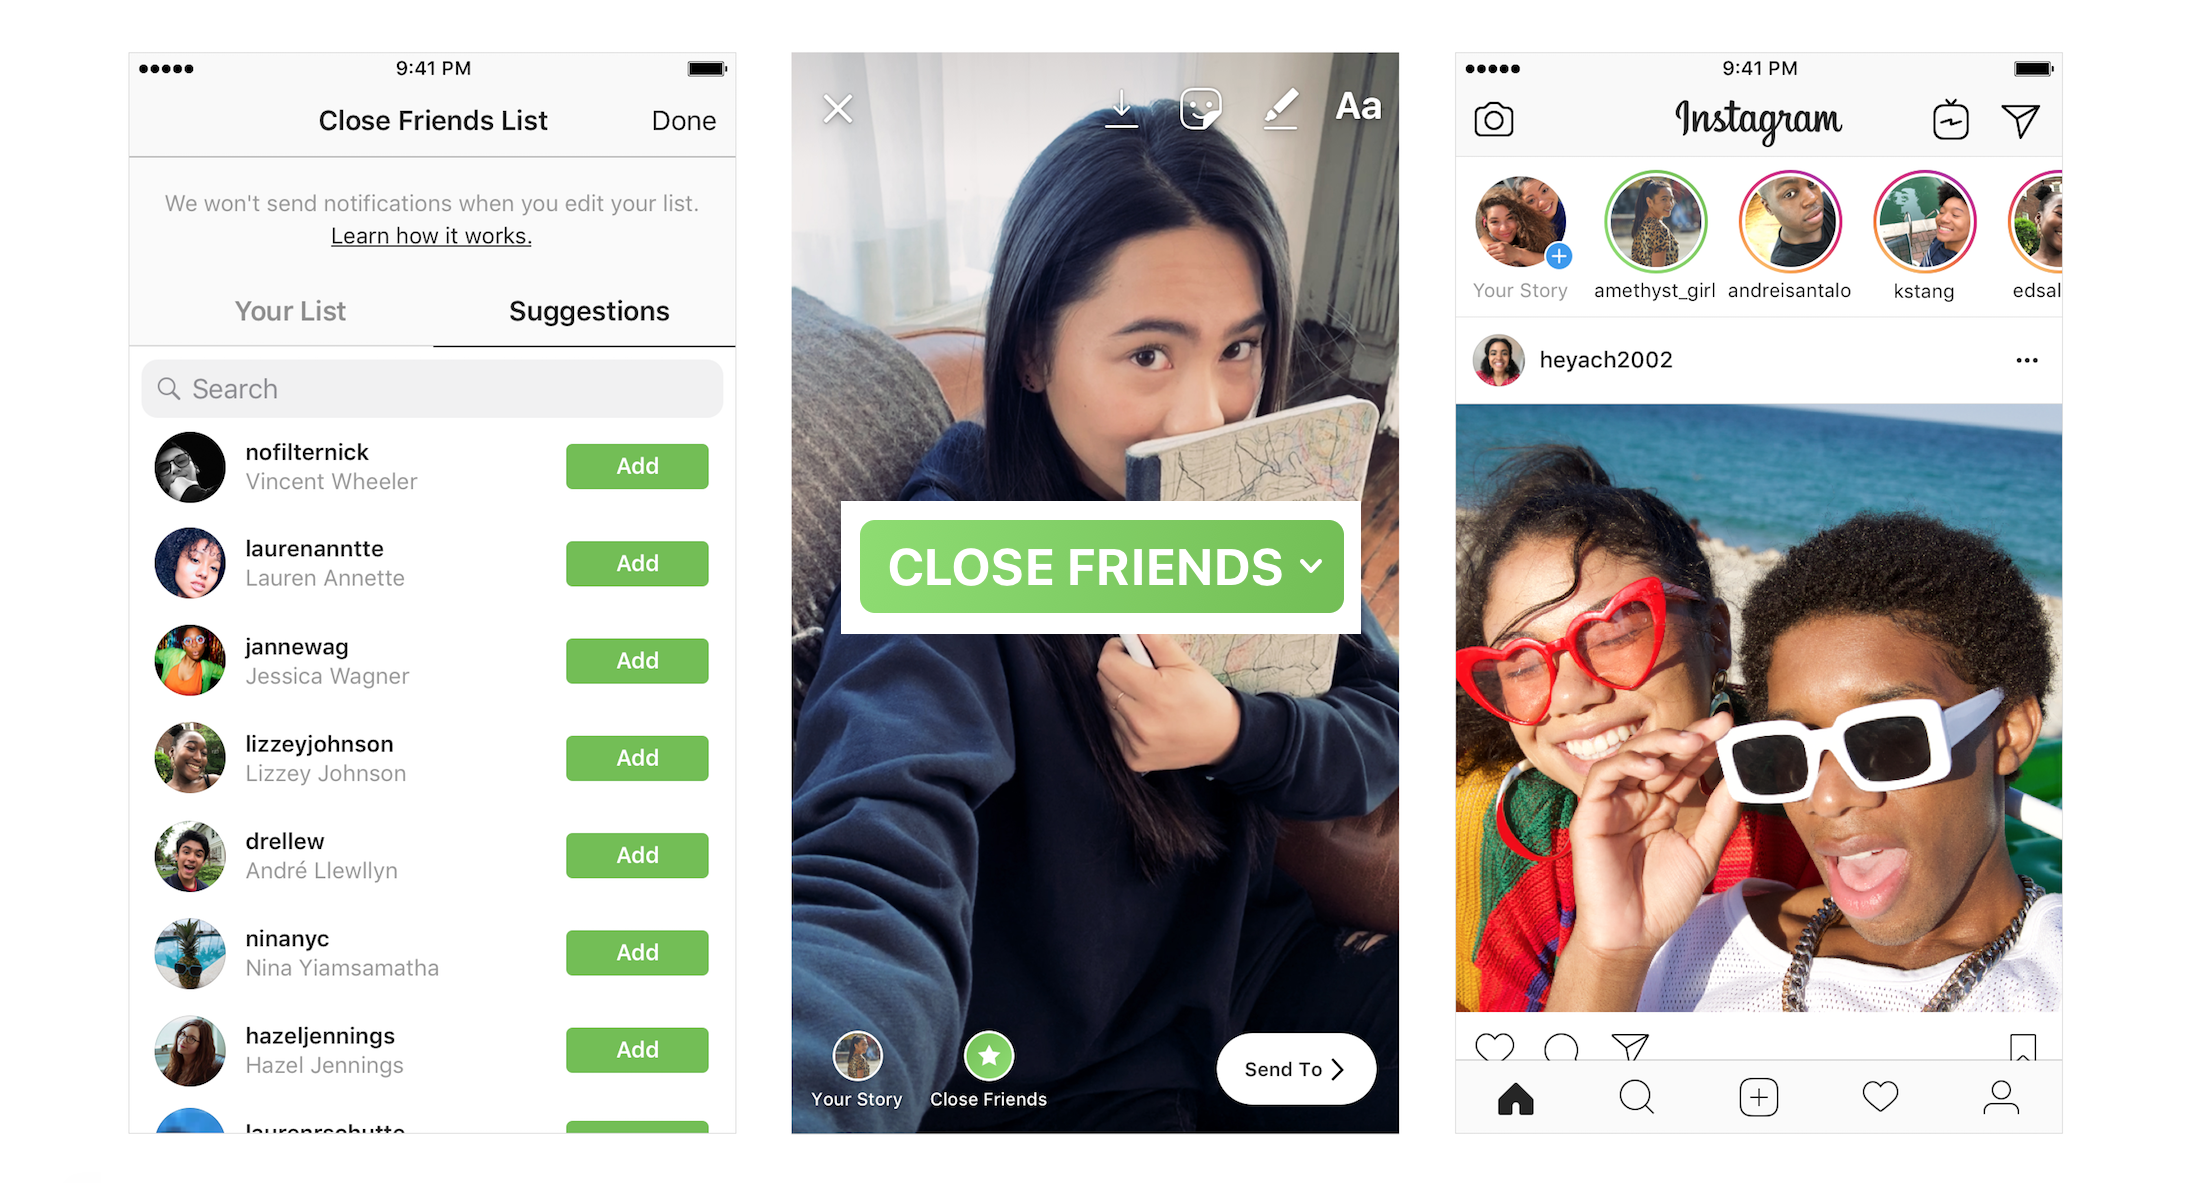 Instagram now lets you share Stories to a Close Friends list | TechCrunch